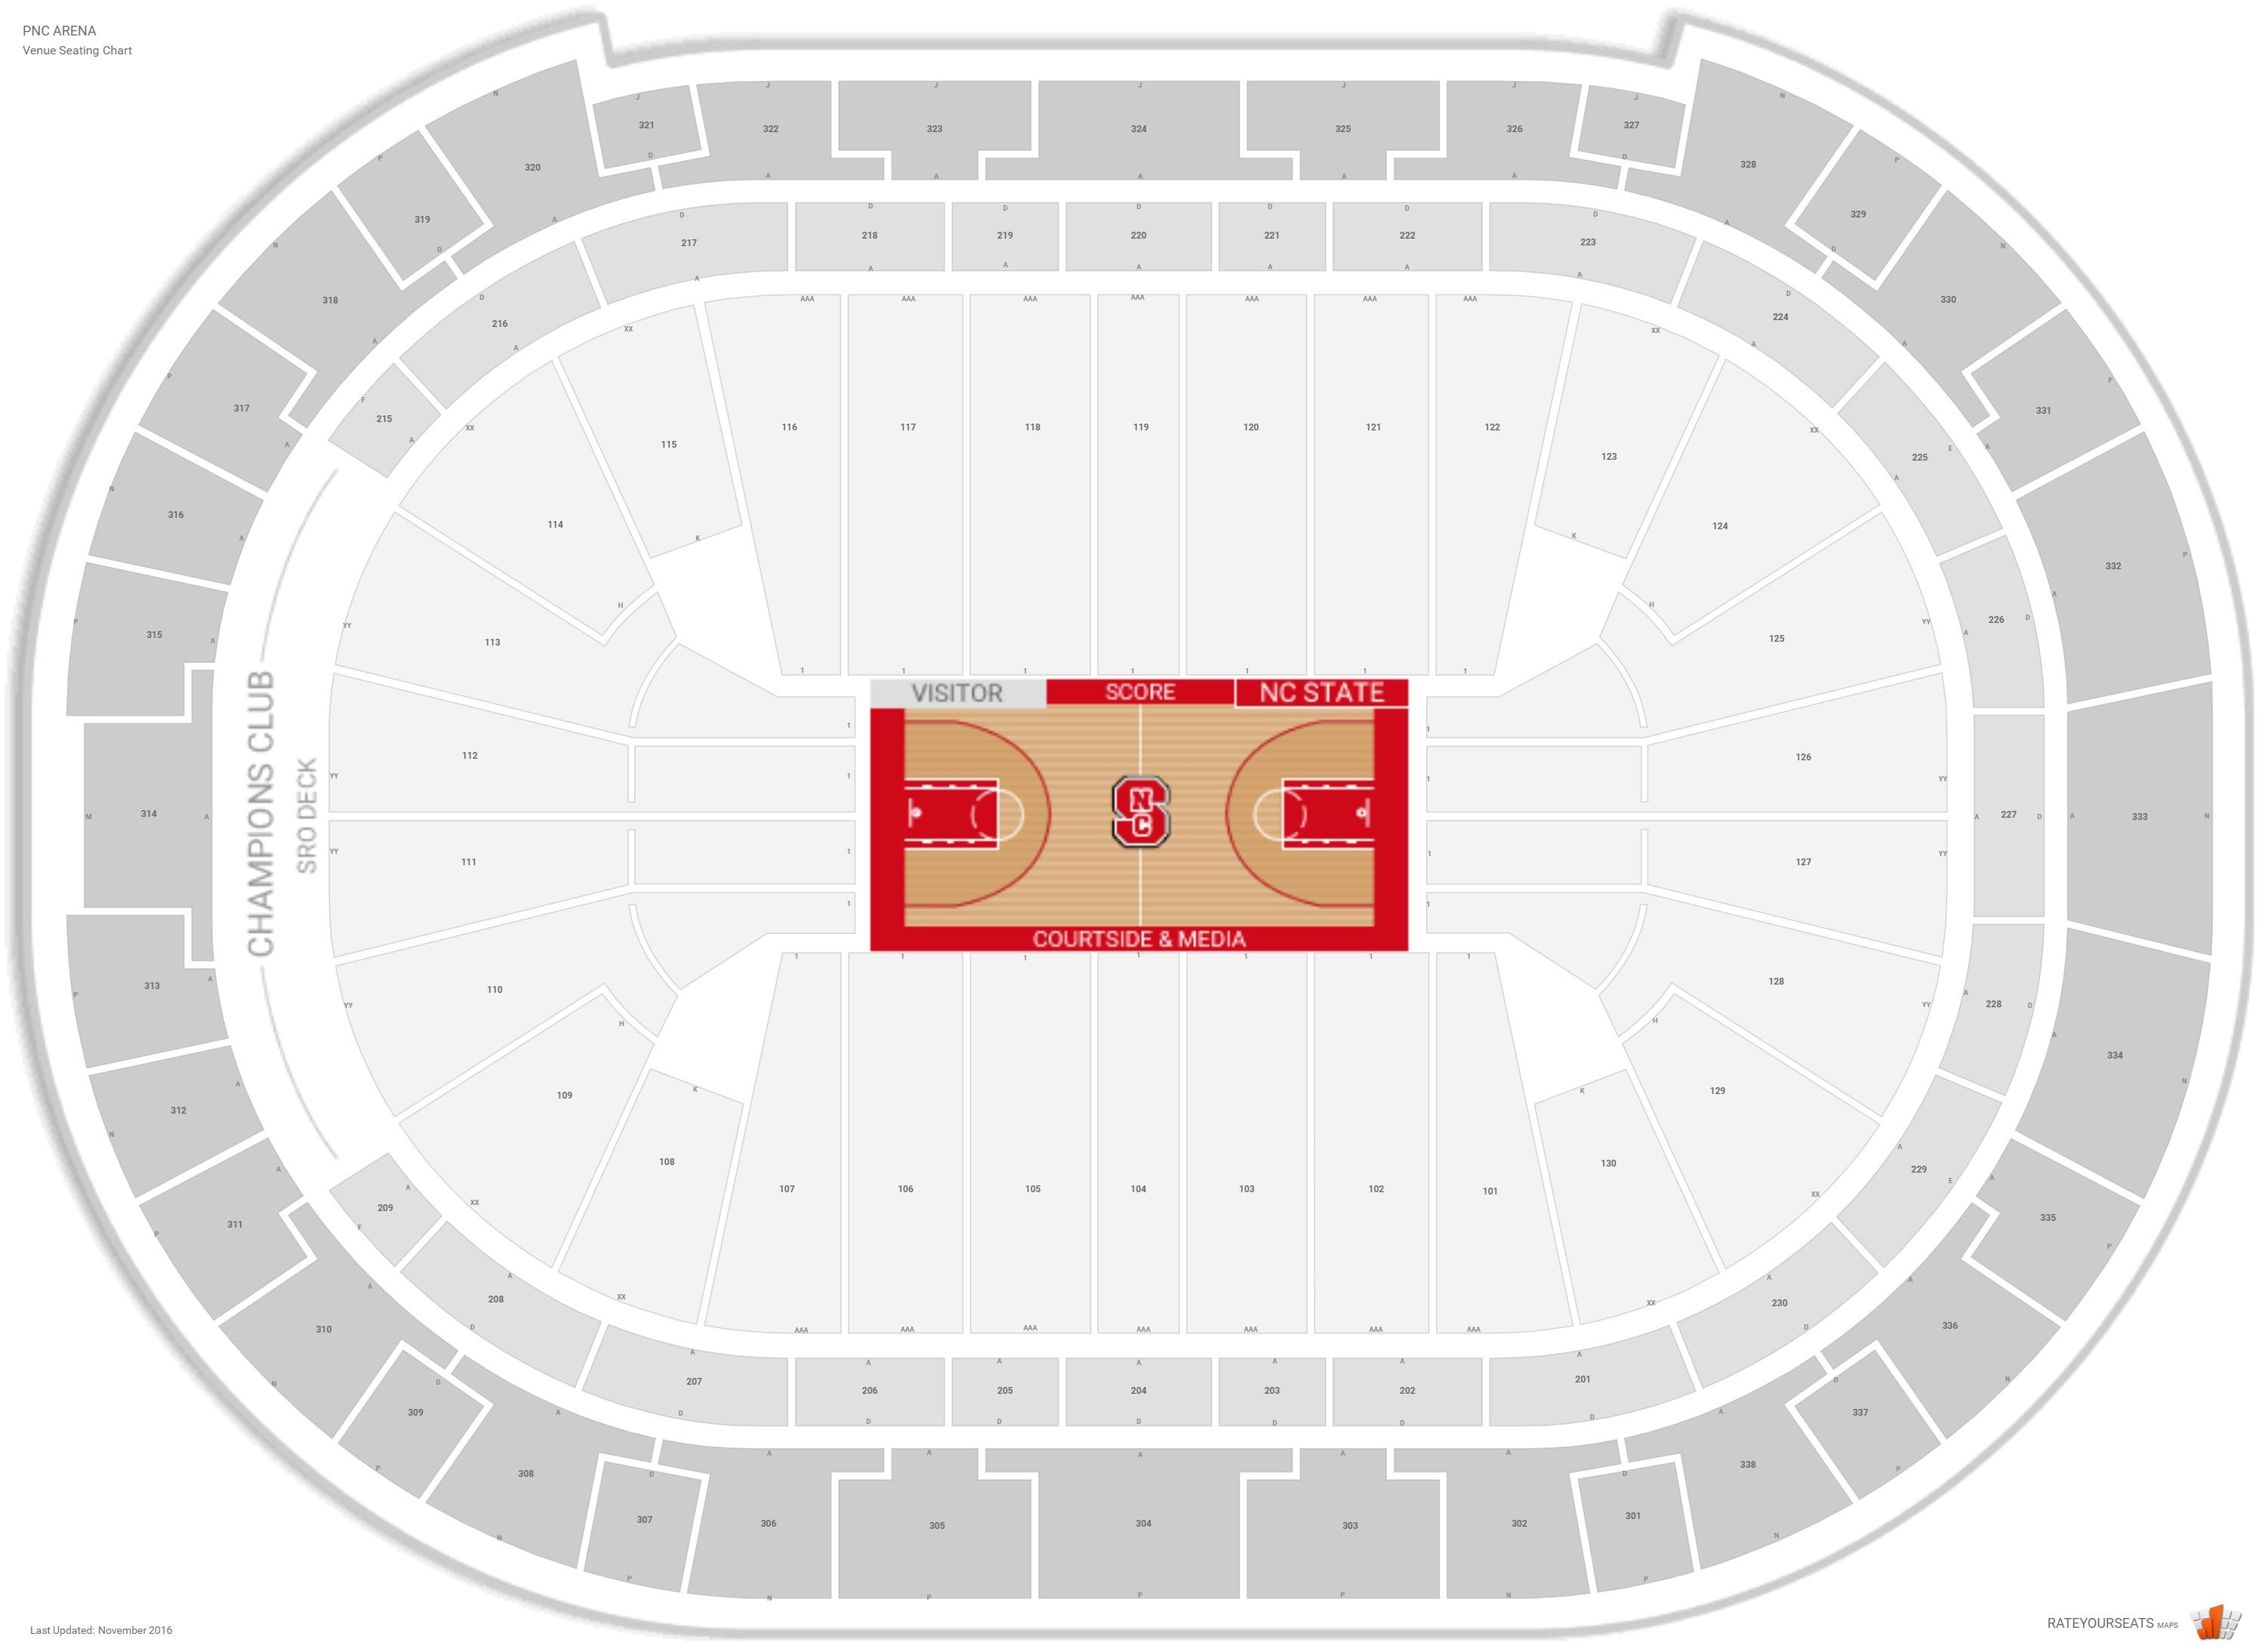 PNC Arena Seating Chart with Row Numbers